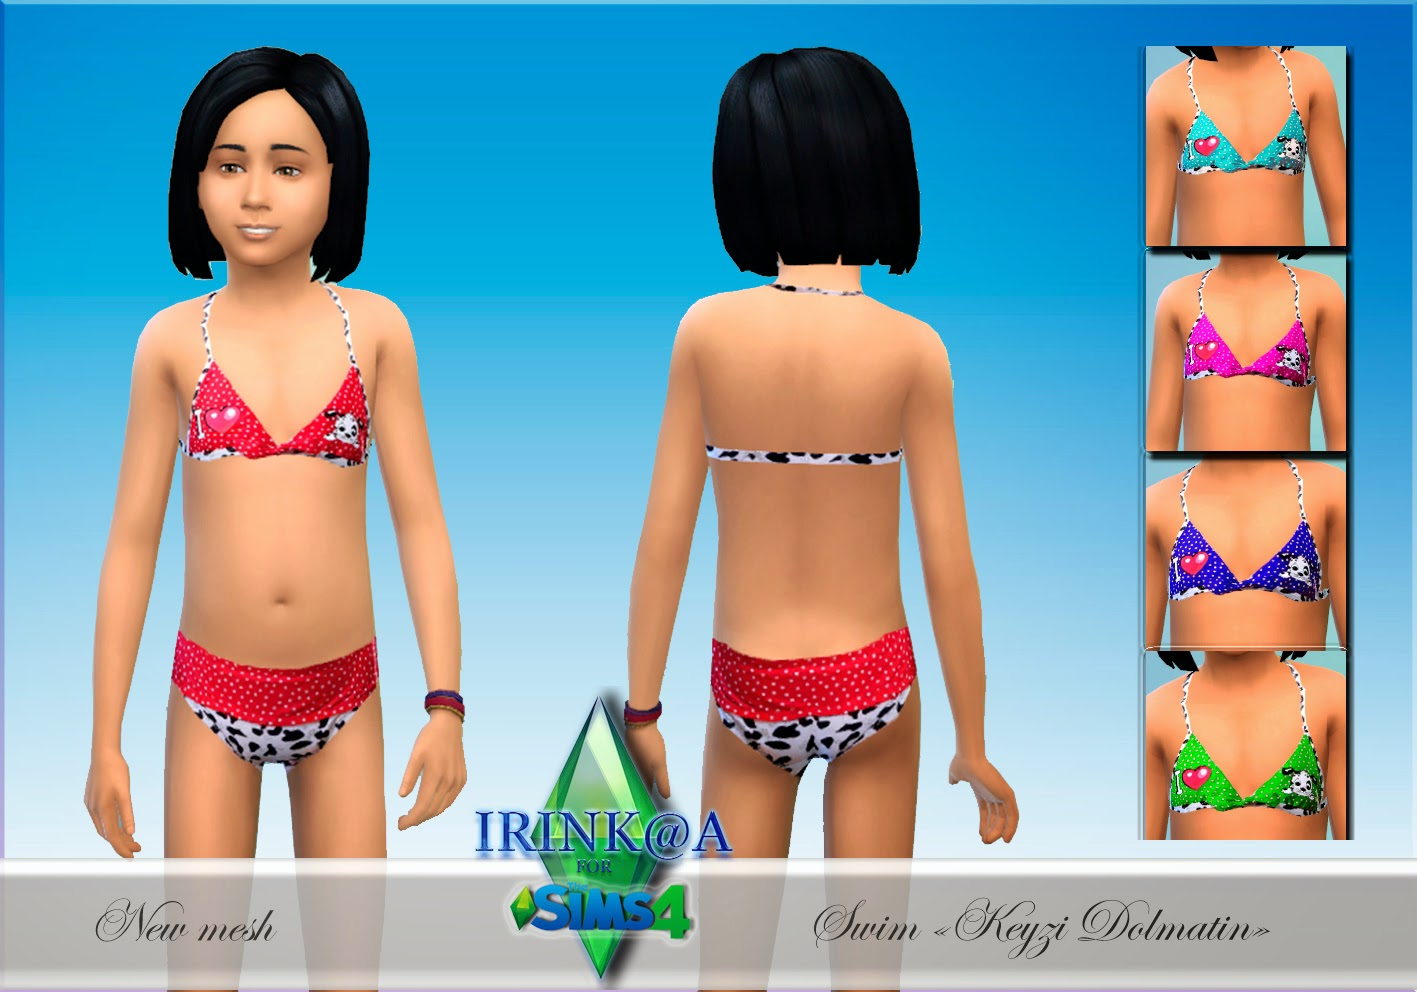 Swimwear for Girls by Irink@a